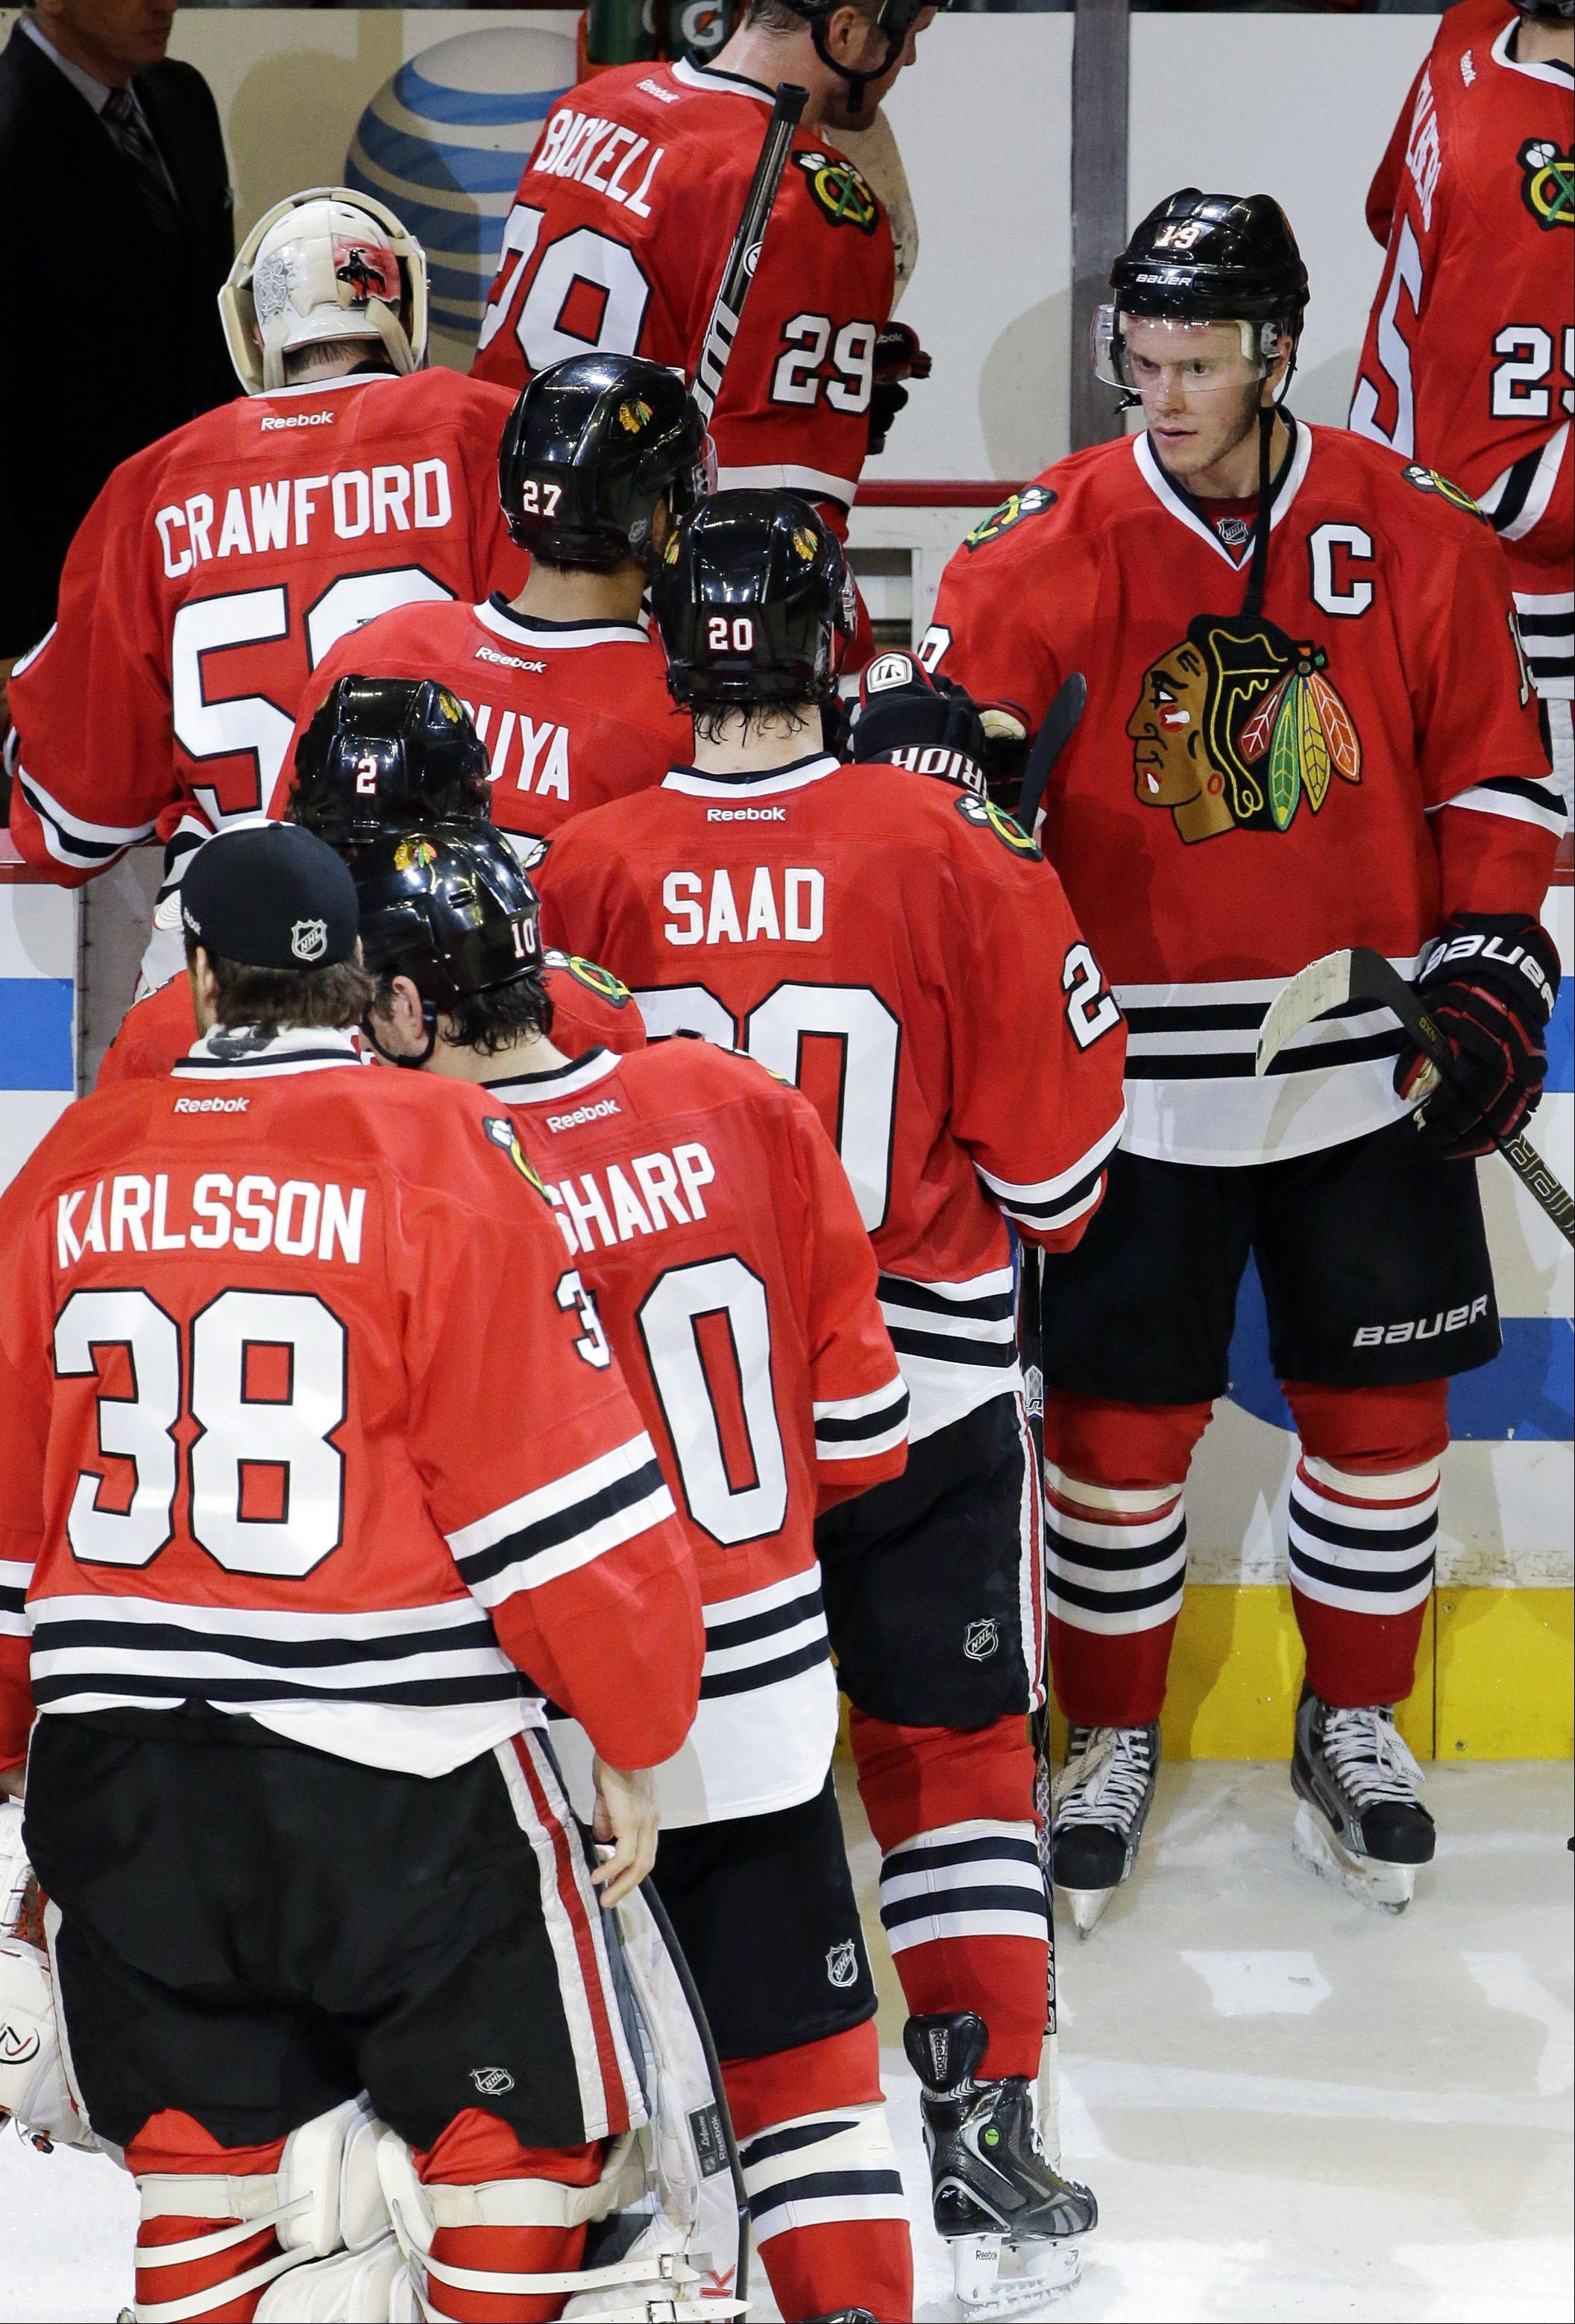 Chicago Blackhawks' Jonathan Toews (19), right, celebrates with teammates after the Blackhawks defeated the Minnesota Wild 5-1 in Game 5 of an NHL hockey Stanley Cup first-round playoff series in Chicago, Thursday, May 9, 2013.